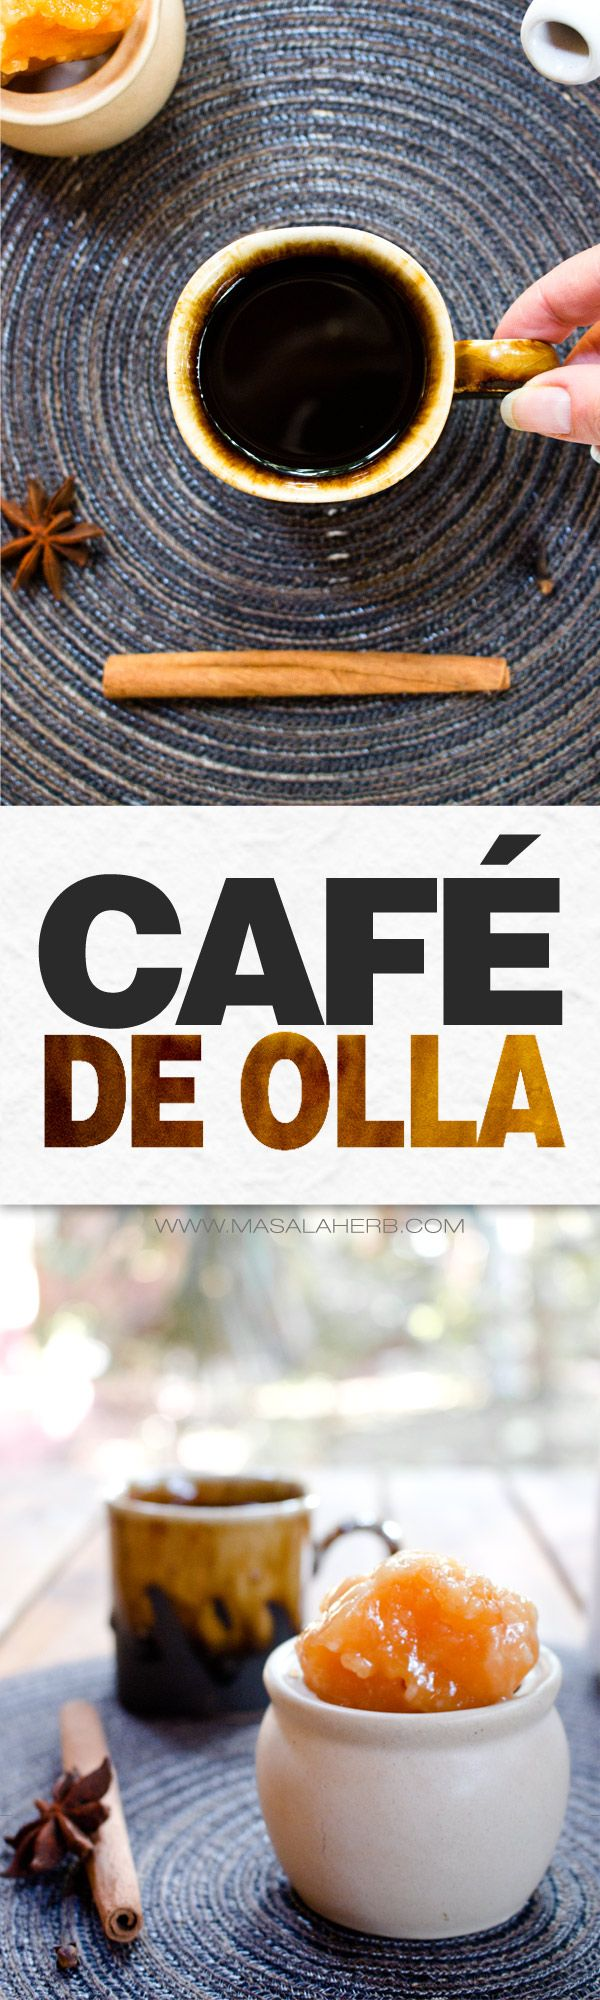 "Cafe de Olla - How to make Spiced Mexican Coffee [+Video] prepared with common sweet spices and cane sugar aka mexican Piloncillo. de olla means lit. translated clay ""earthenware""pot. Café de Olla is prepared when it's cold and warms up the cold body from within. www.MasalaHerb.com #masalaherb #coffee #spiced #mexican"